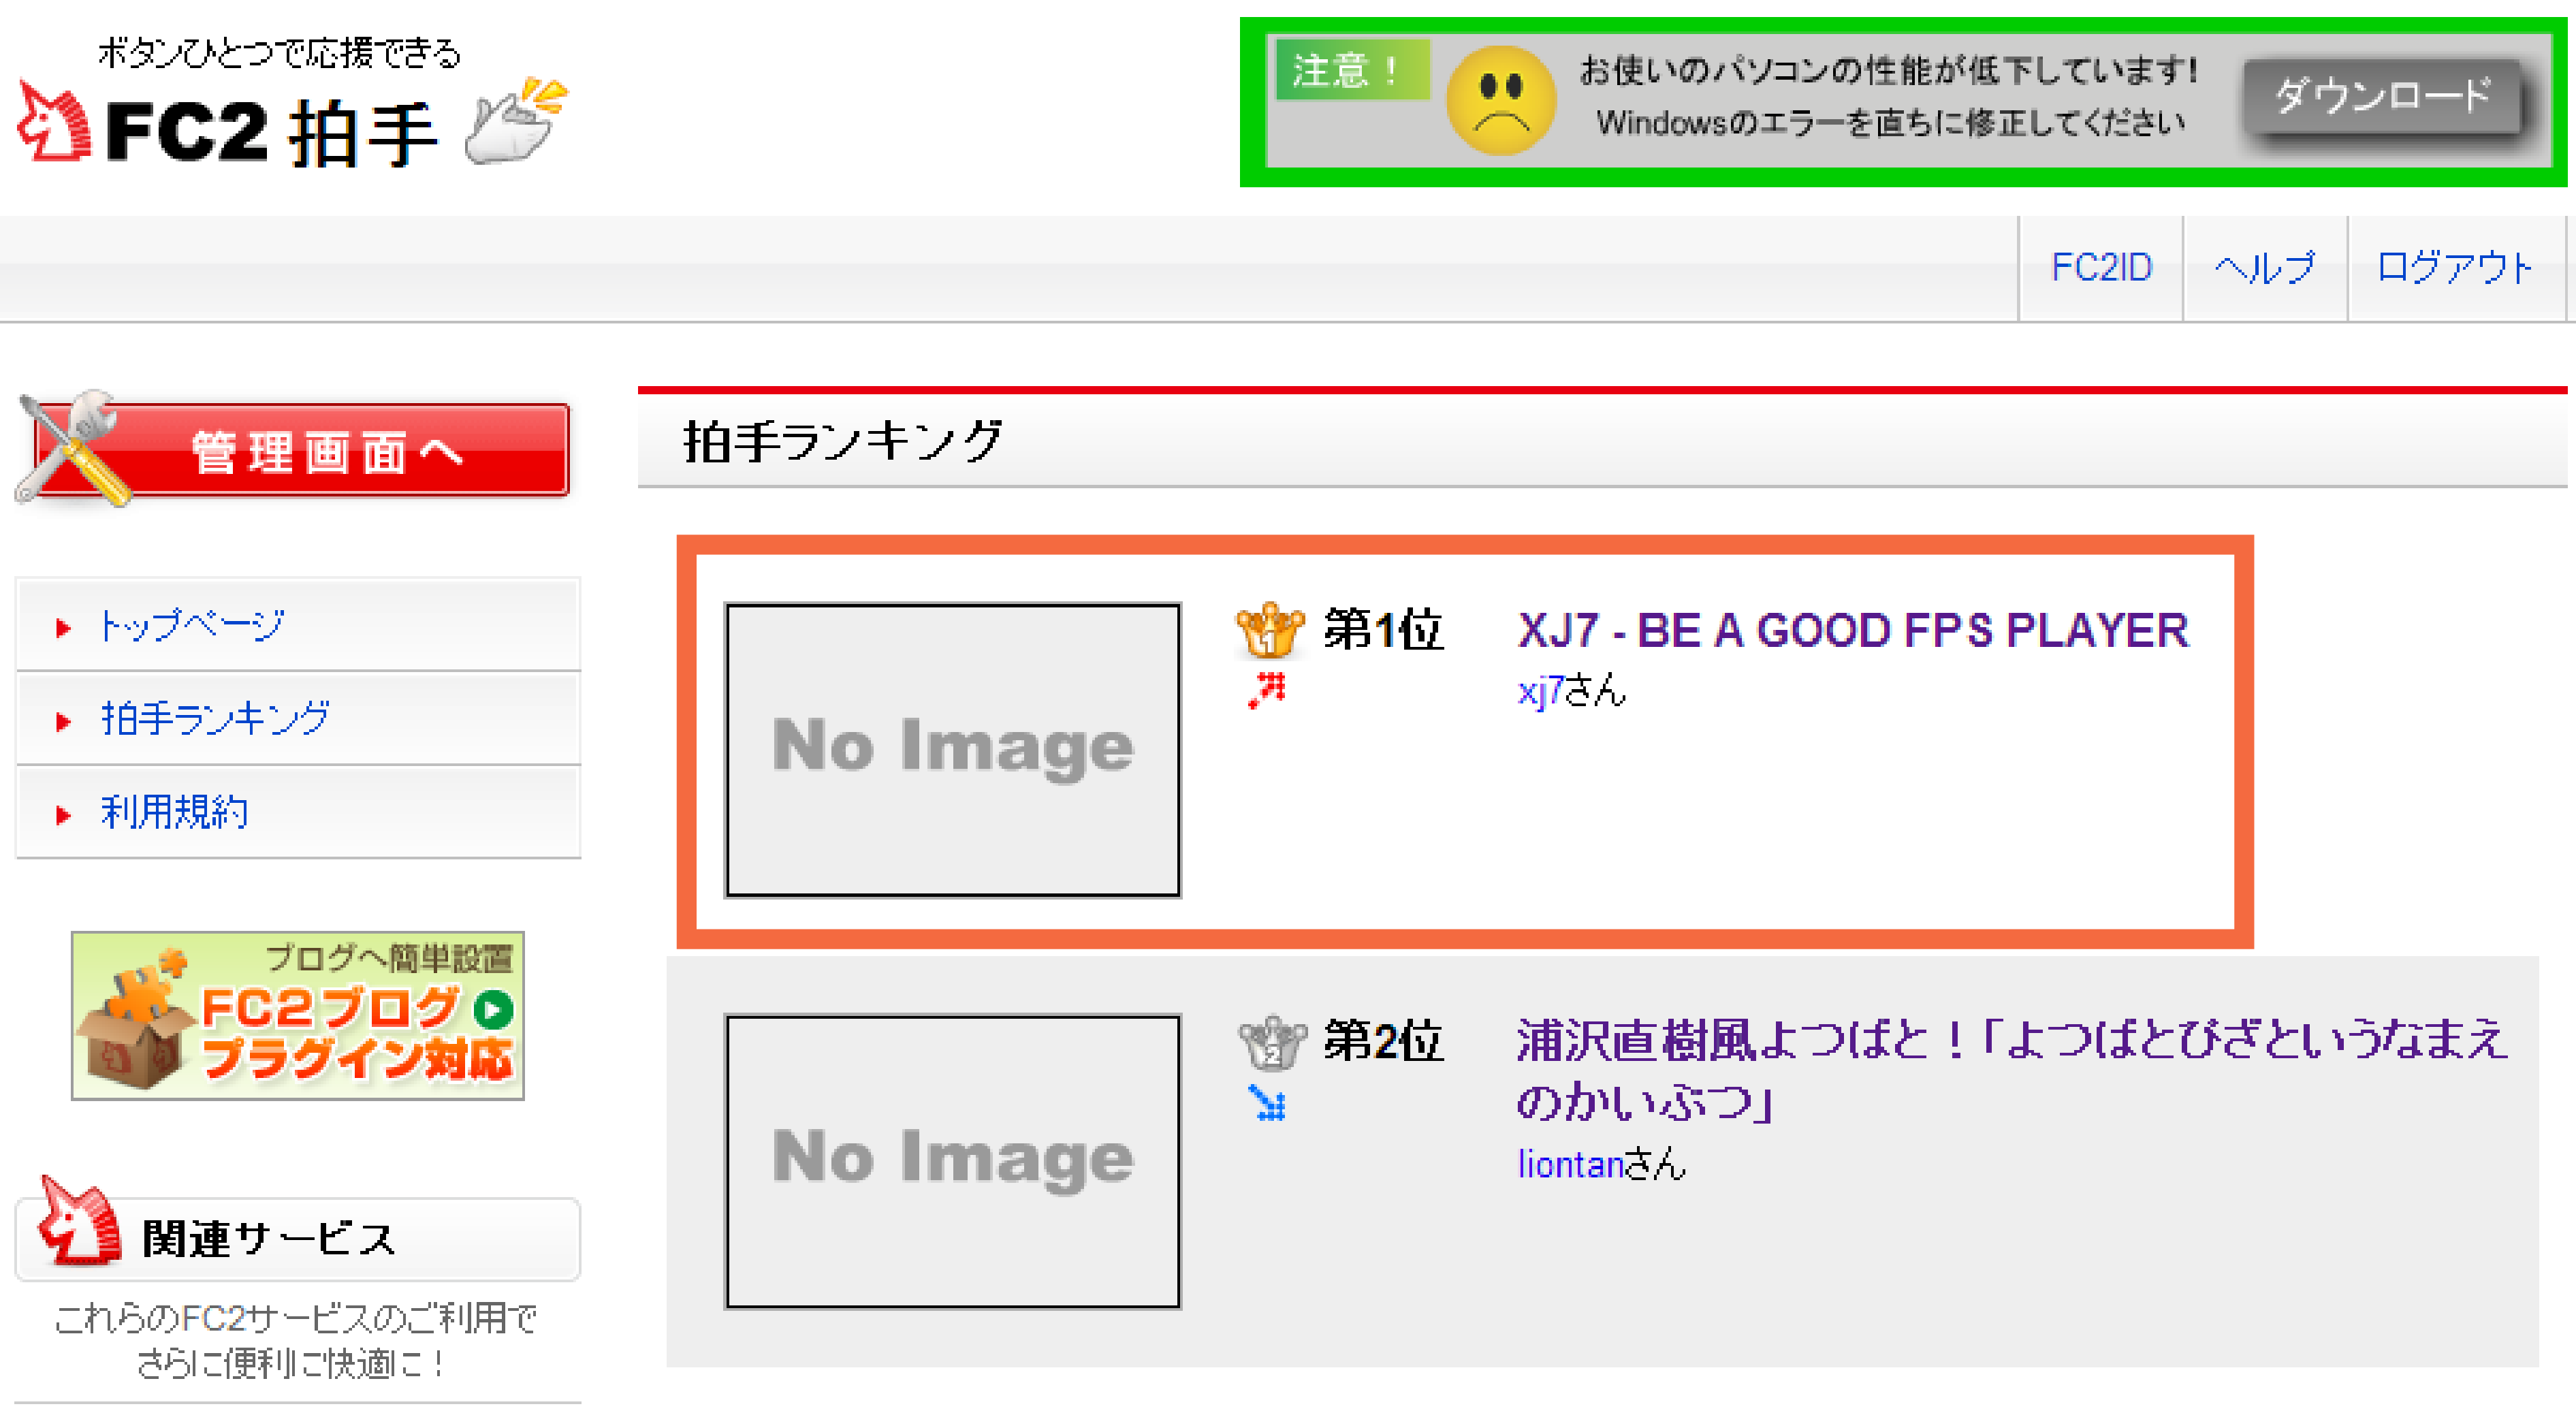 20130312221039153.png